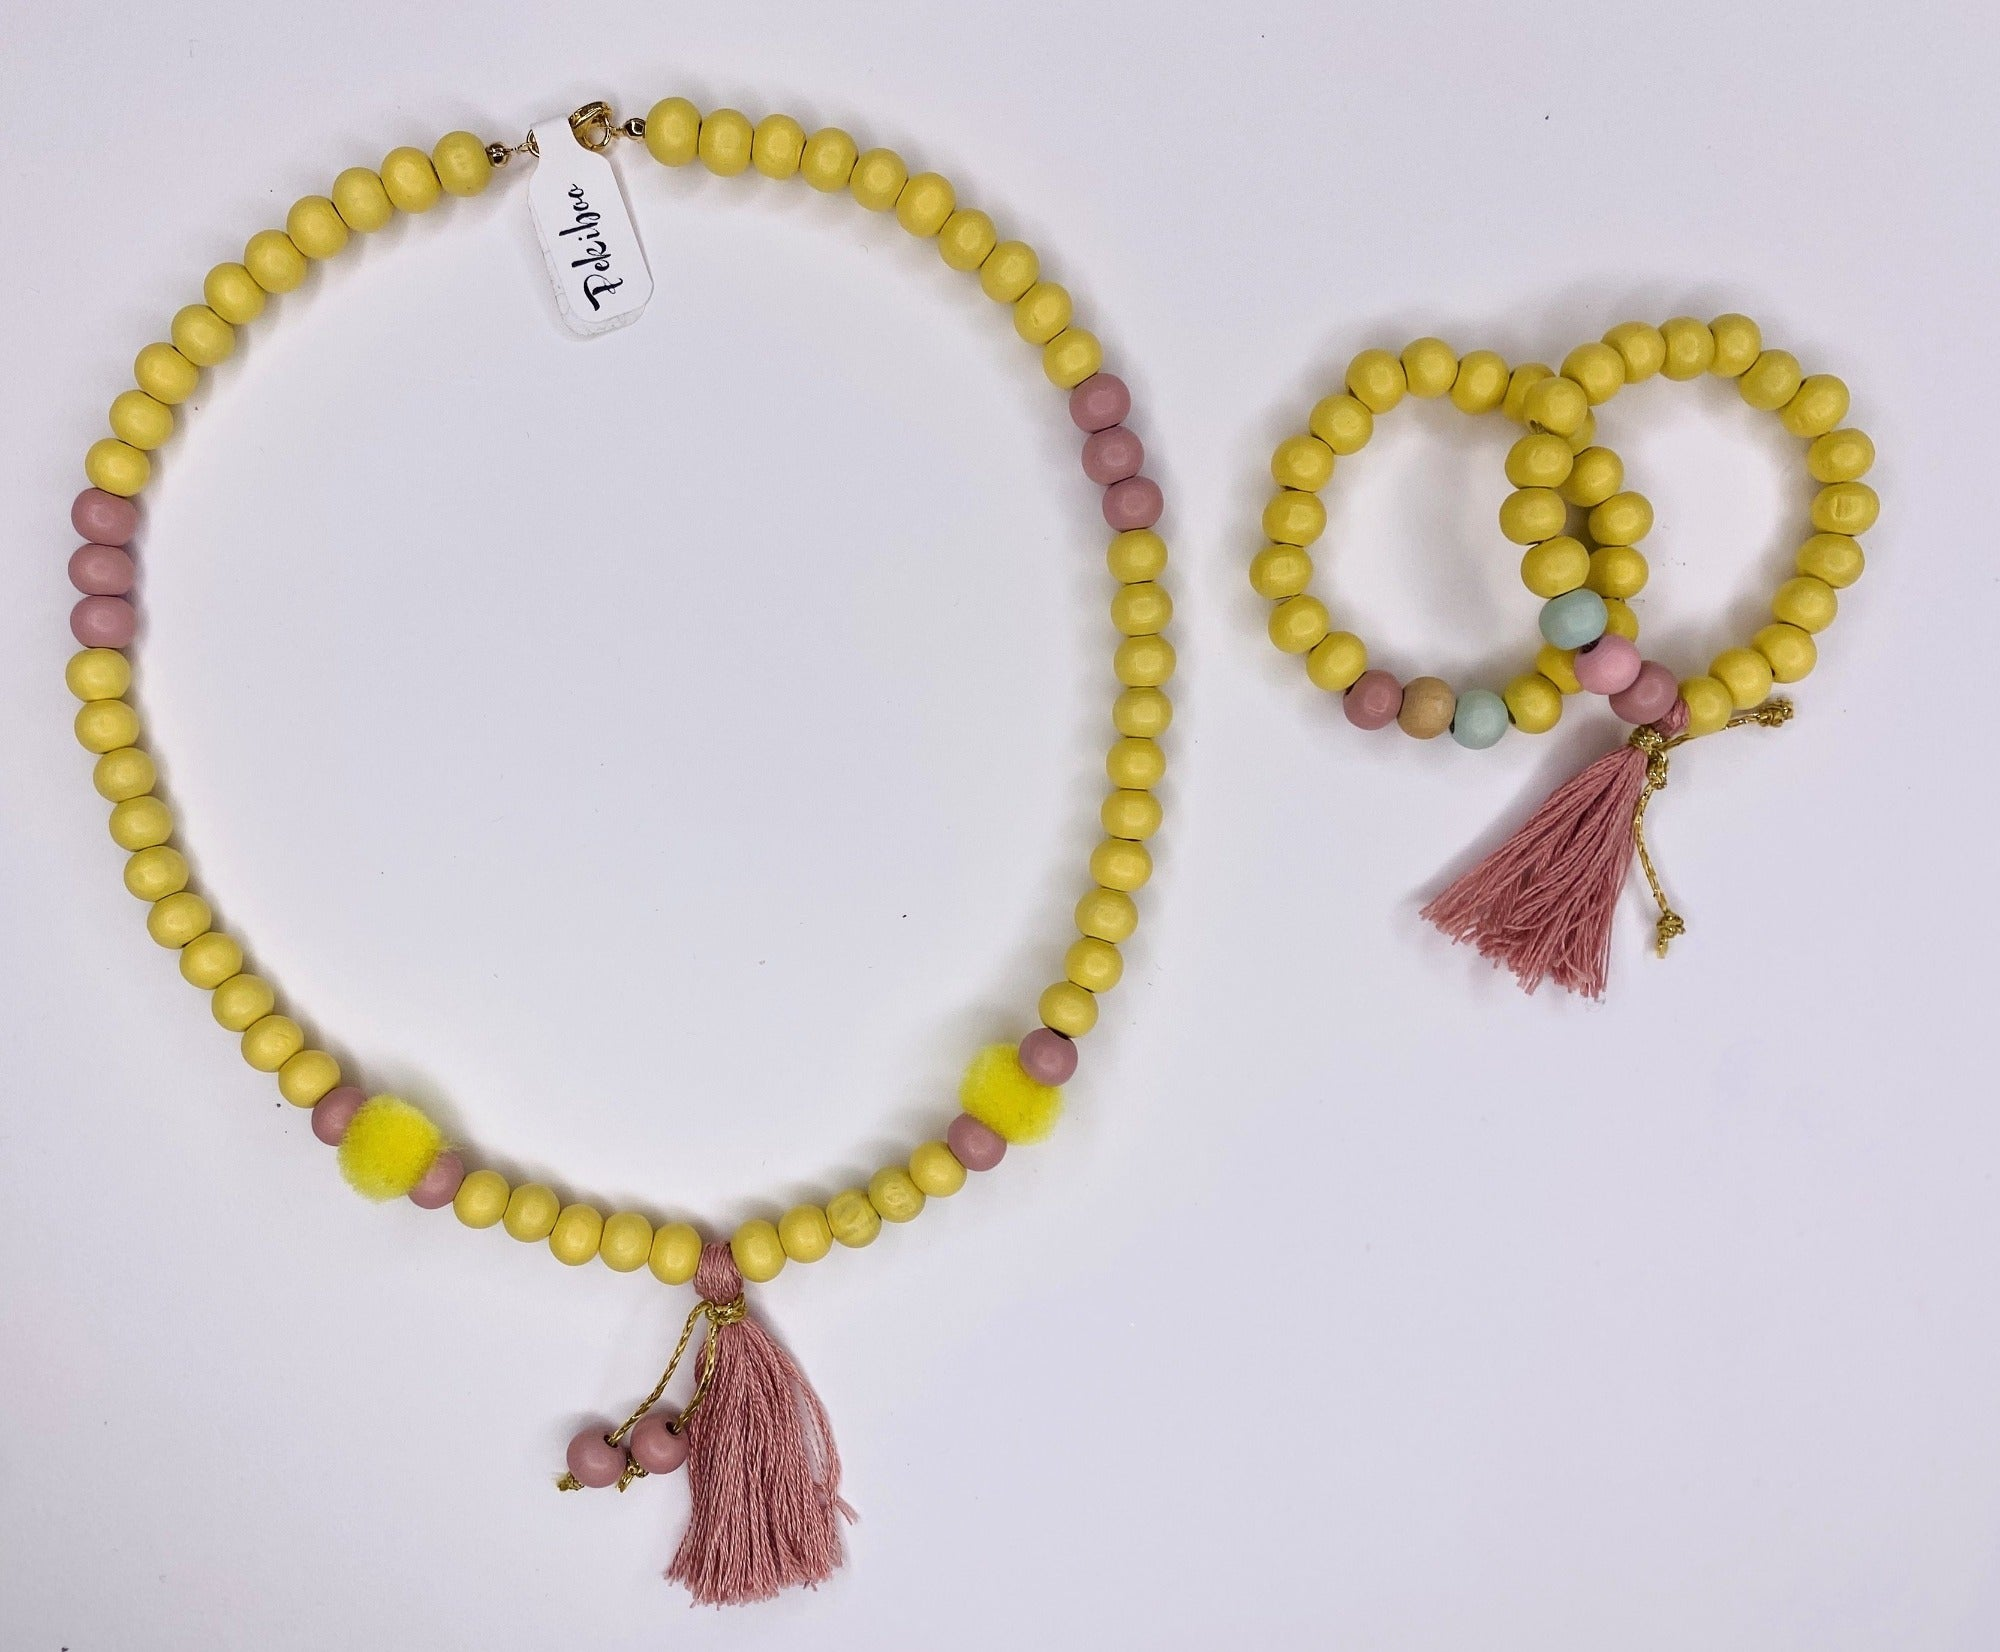 Yellow Necklace and Bracelets